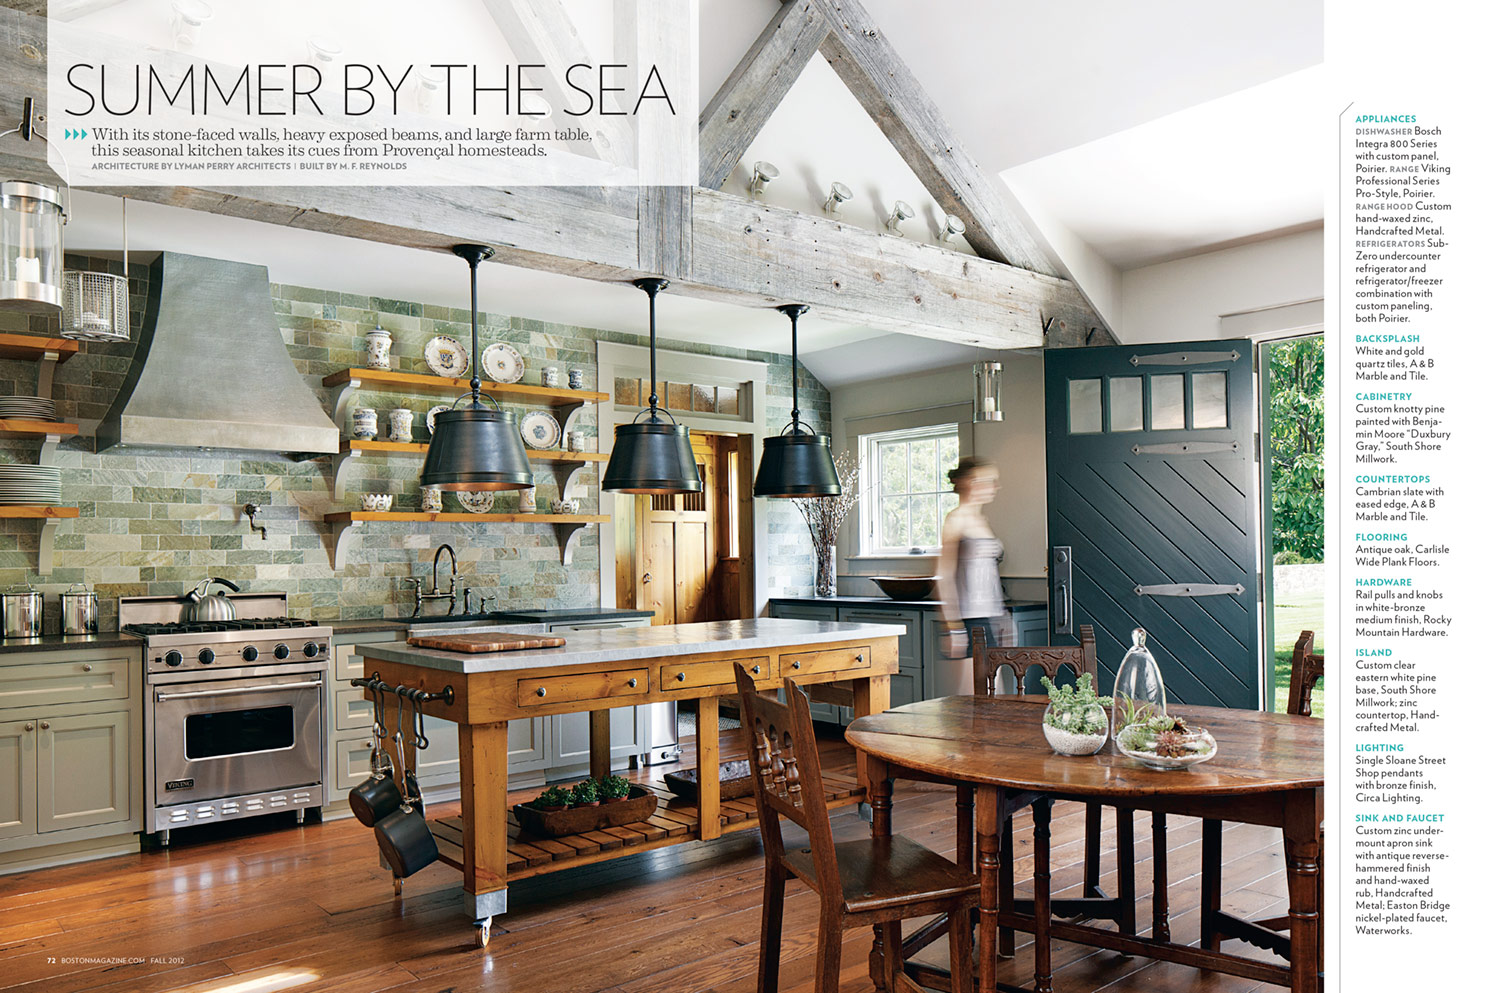 duxbury-kitchen.jpg